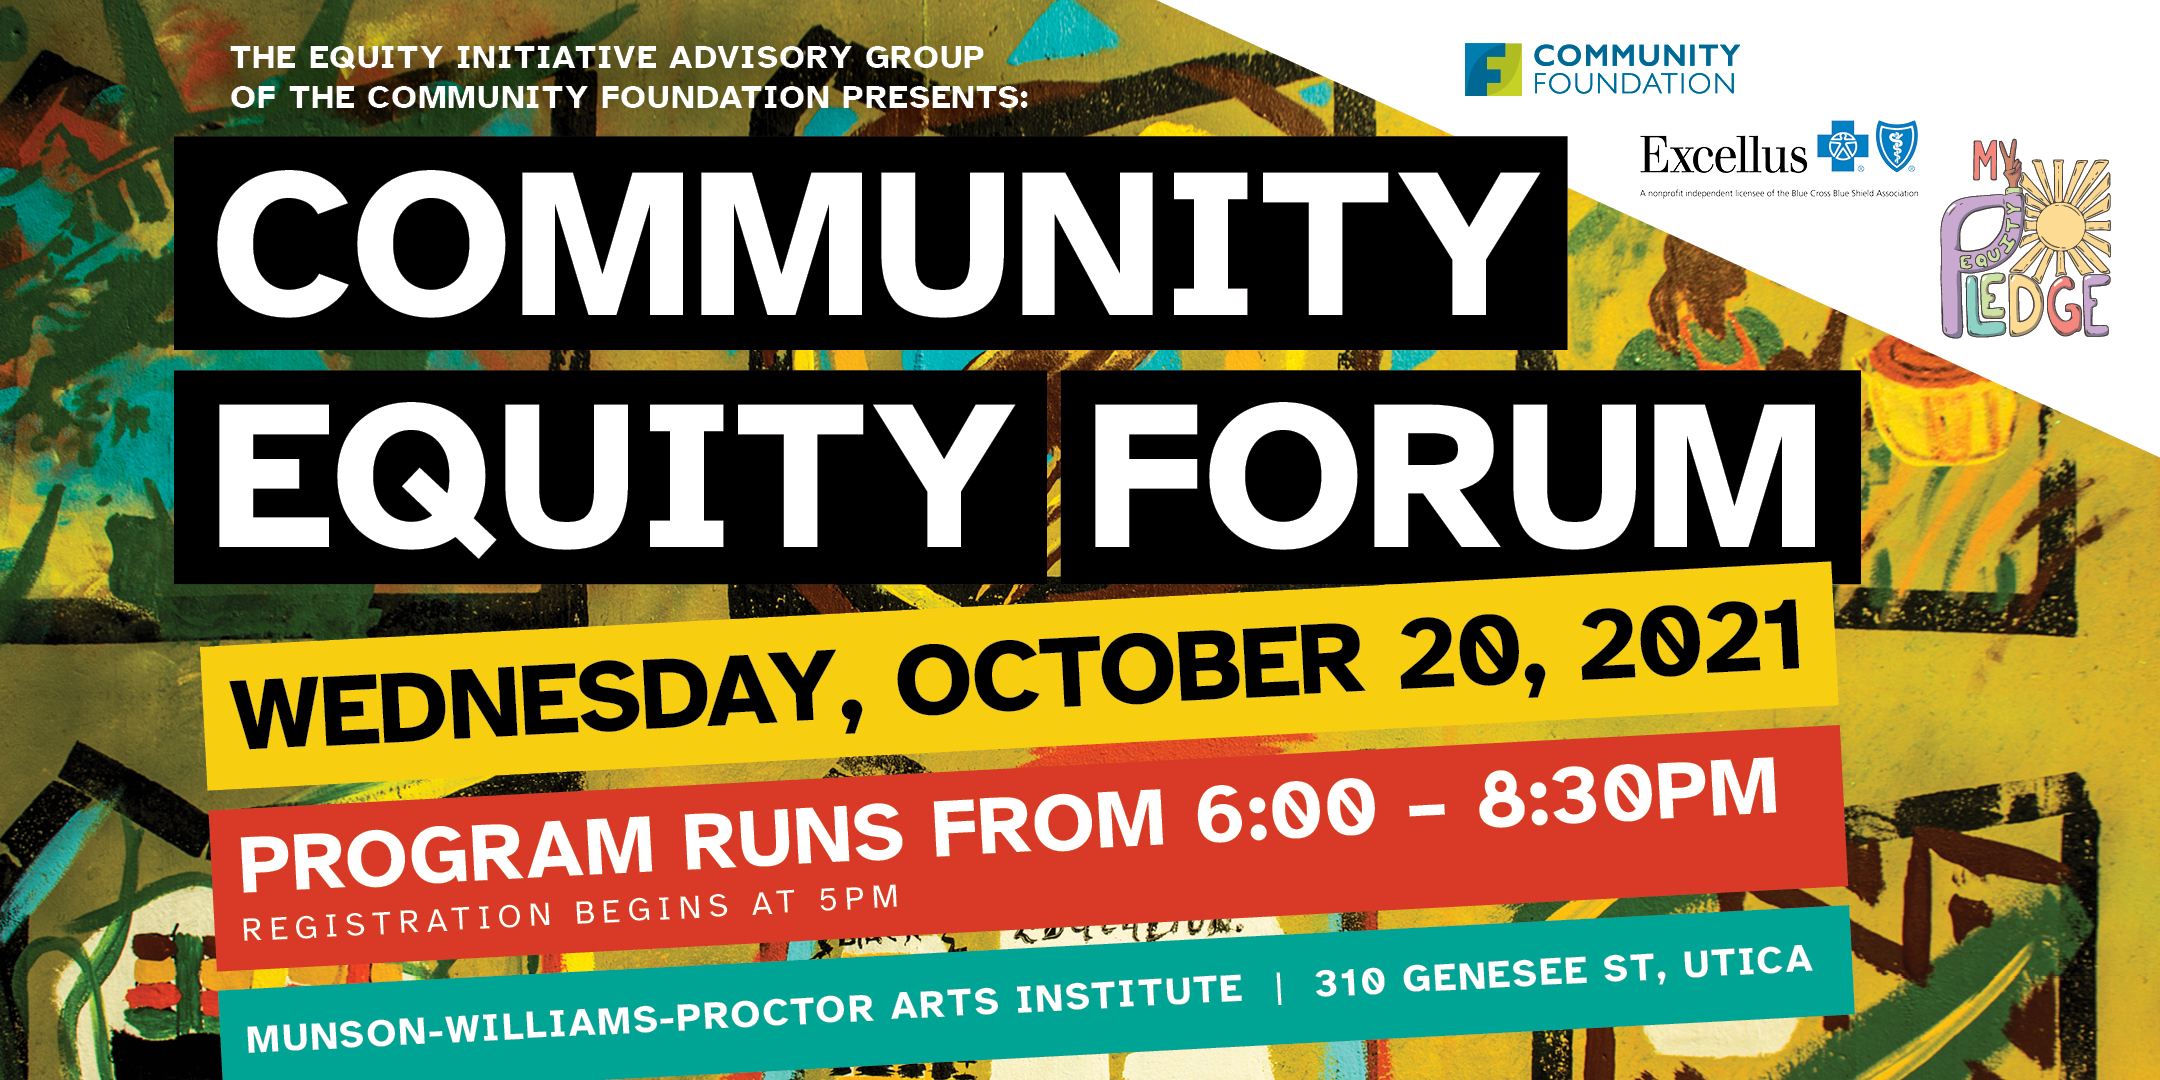 Equity Advisory Group to Hold Community Forum